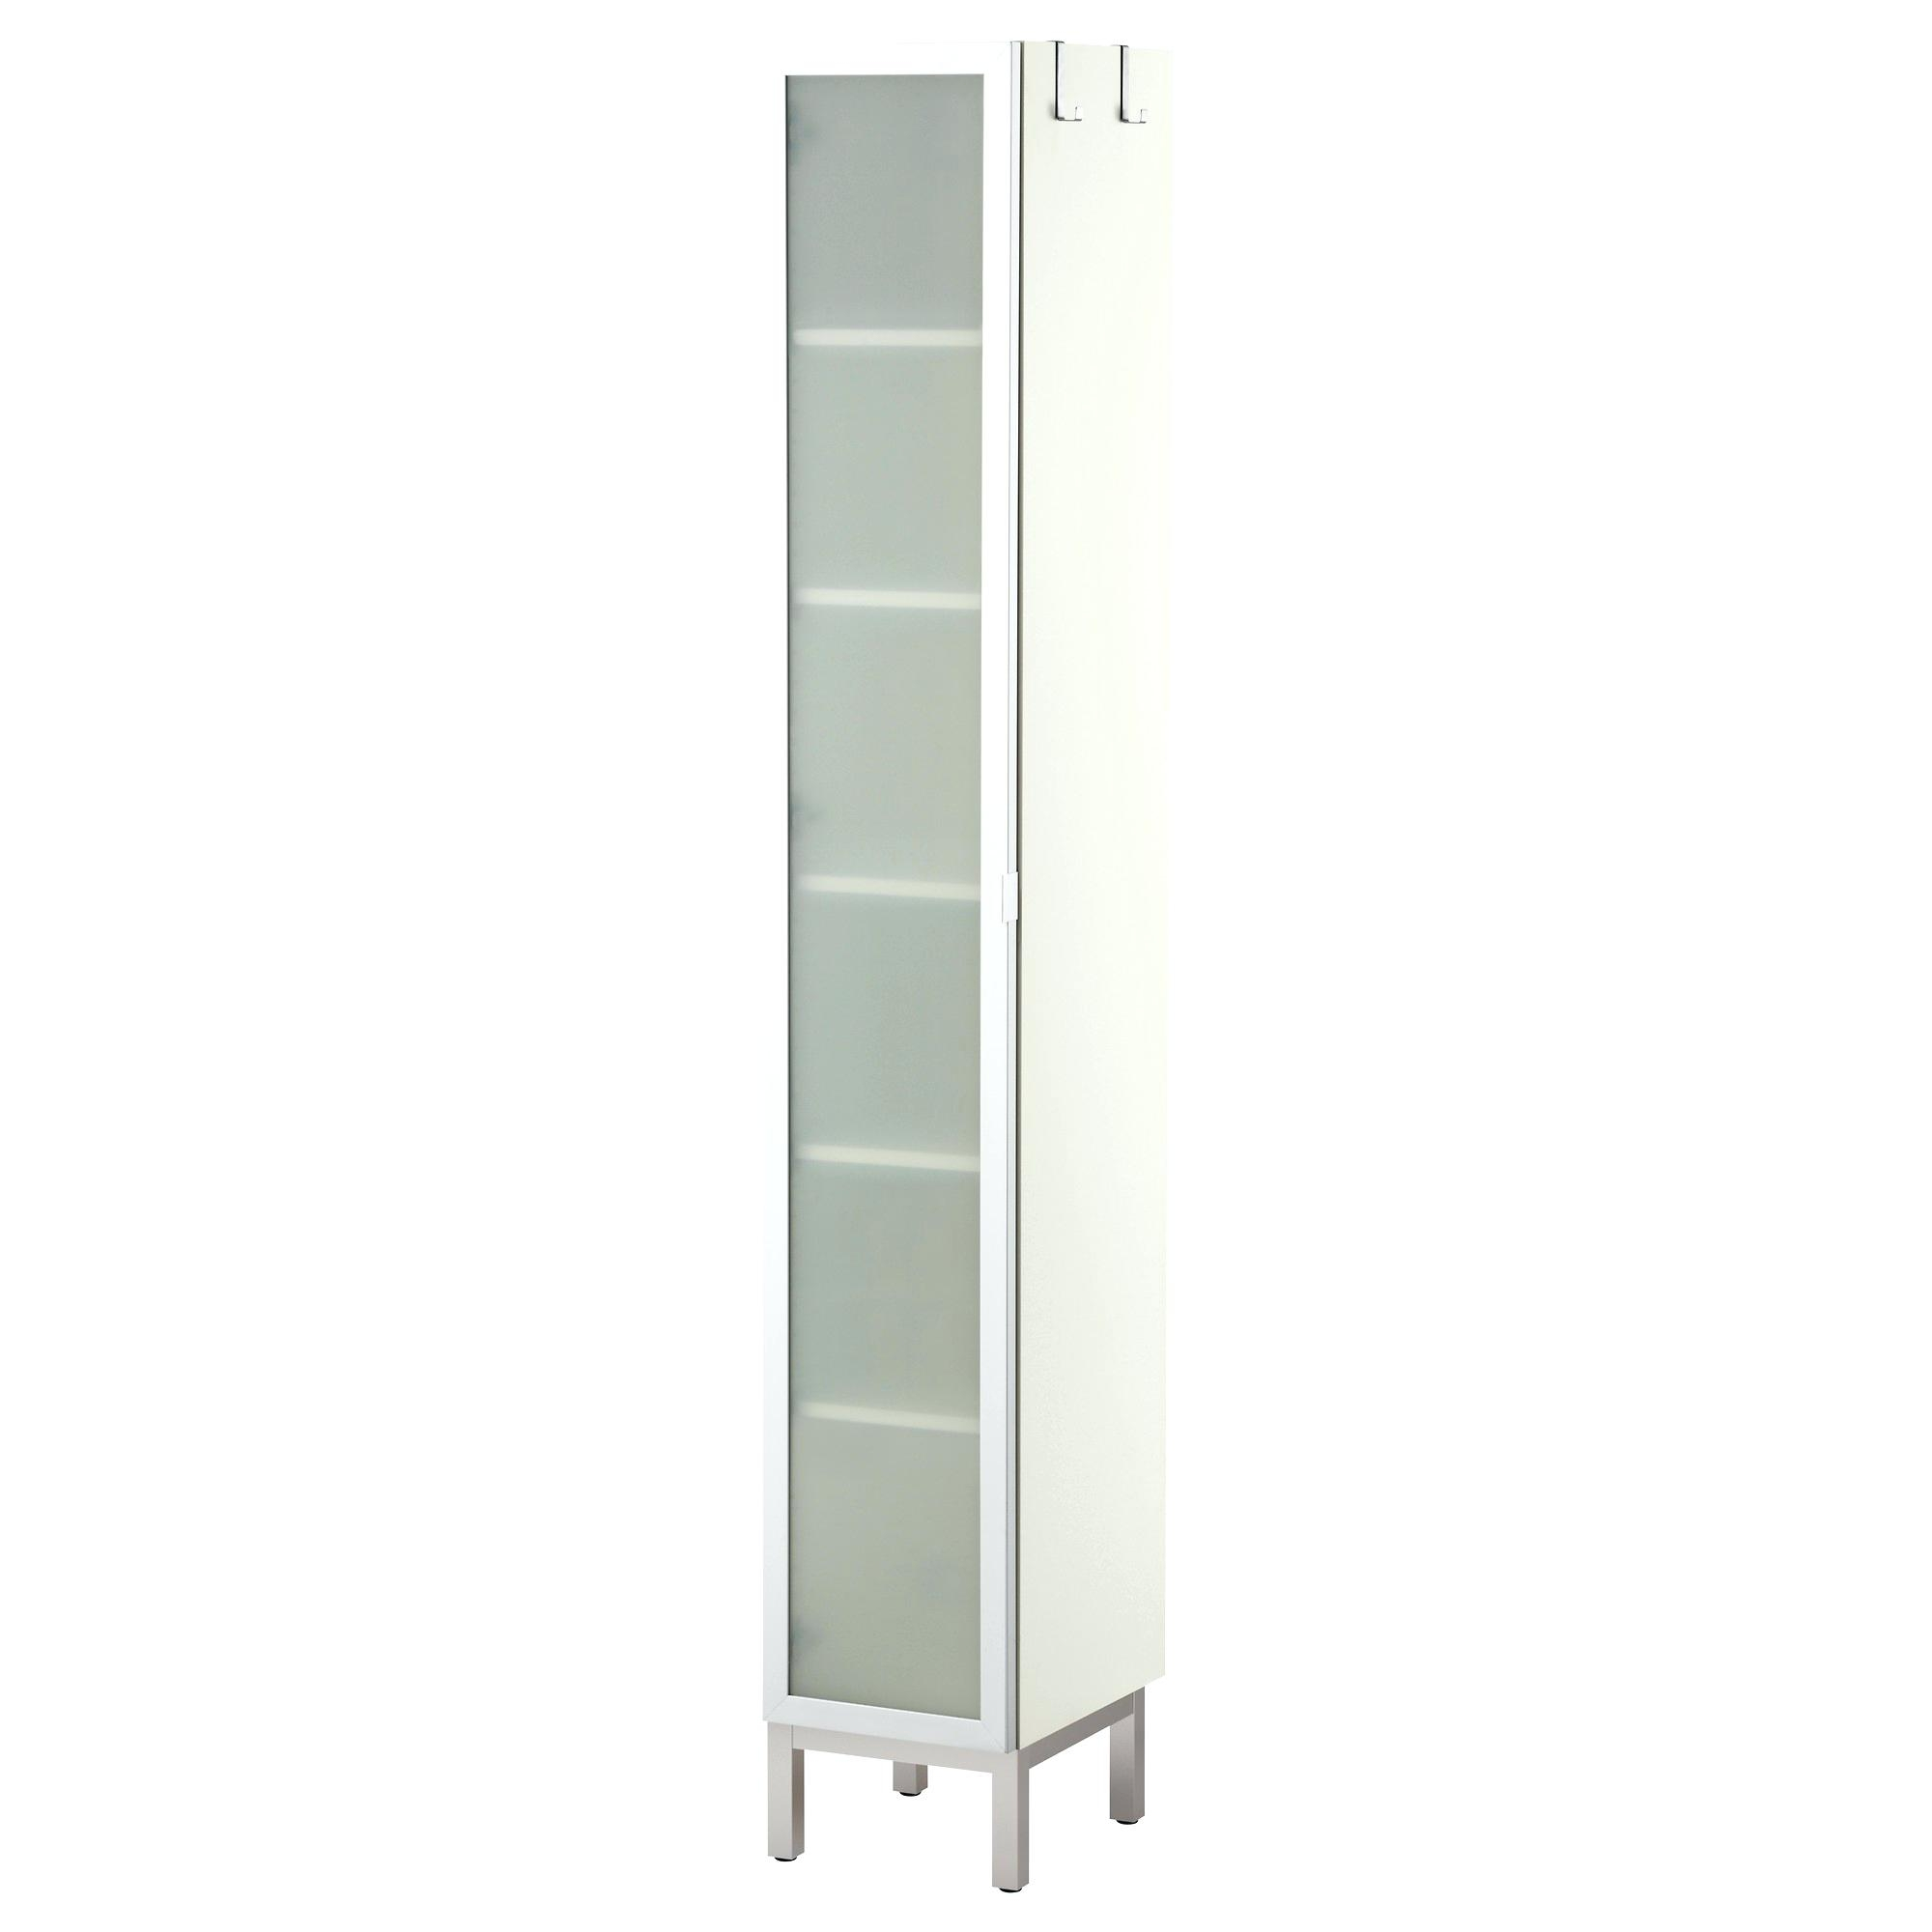 Cheap Sturdy Bookshelves Display Cabinet Shelving Unit Shelves Regarding Free Standing Glass Shelves (#5 of 12)